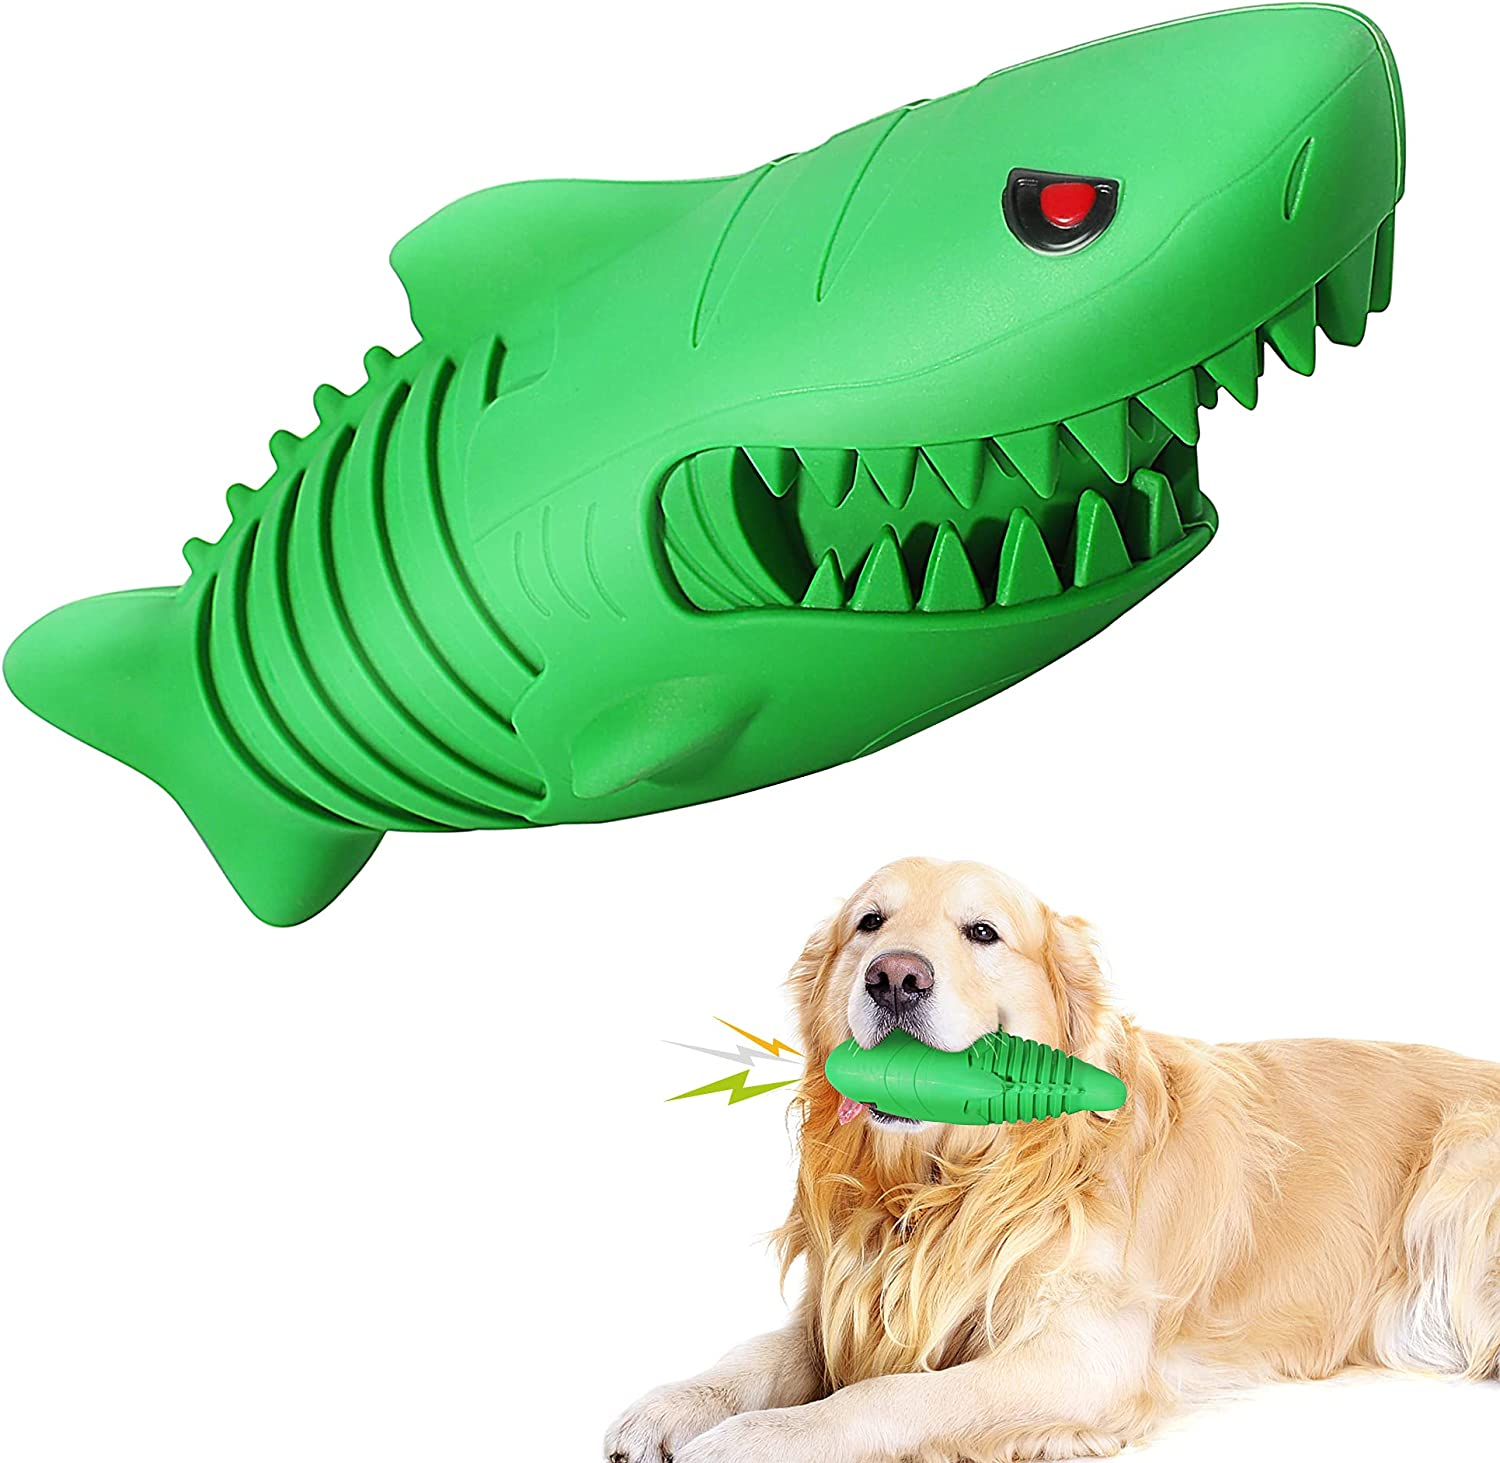 Sinrox Dog Squeaky Toy Puppy Dental Aggressive Max 53% OFF Ch Chew Max 78% OFF Toys for